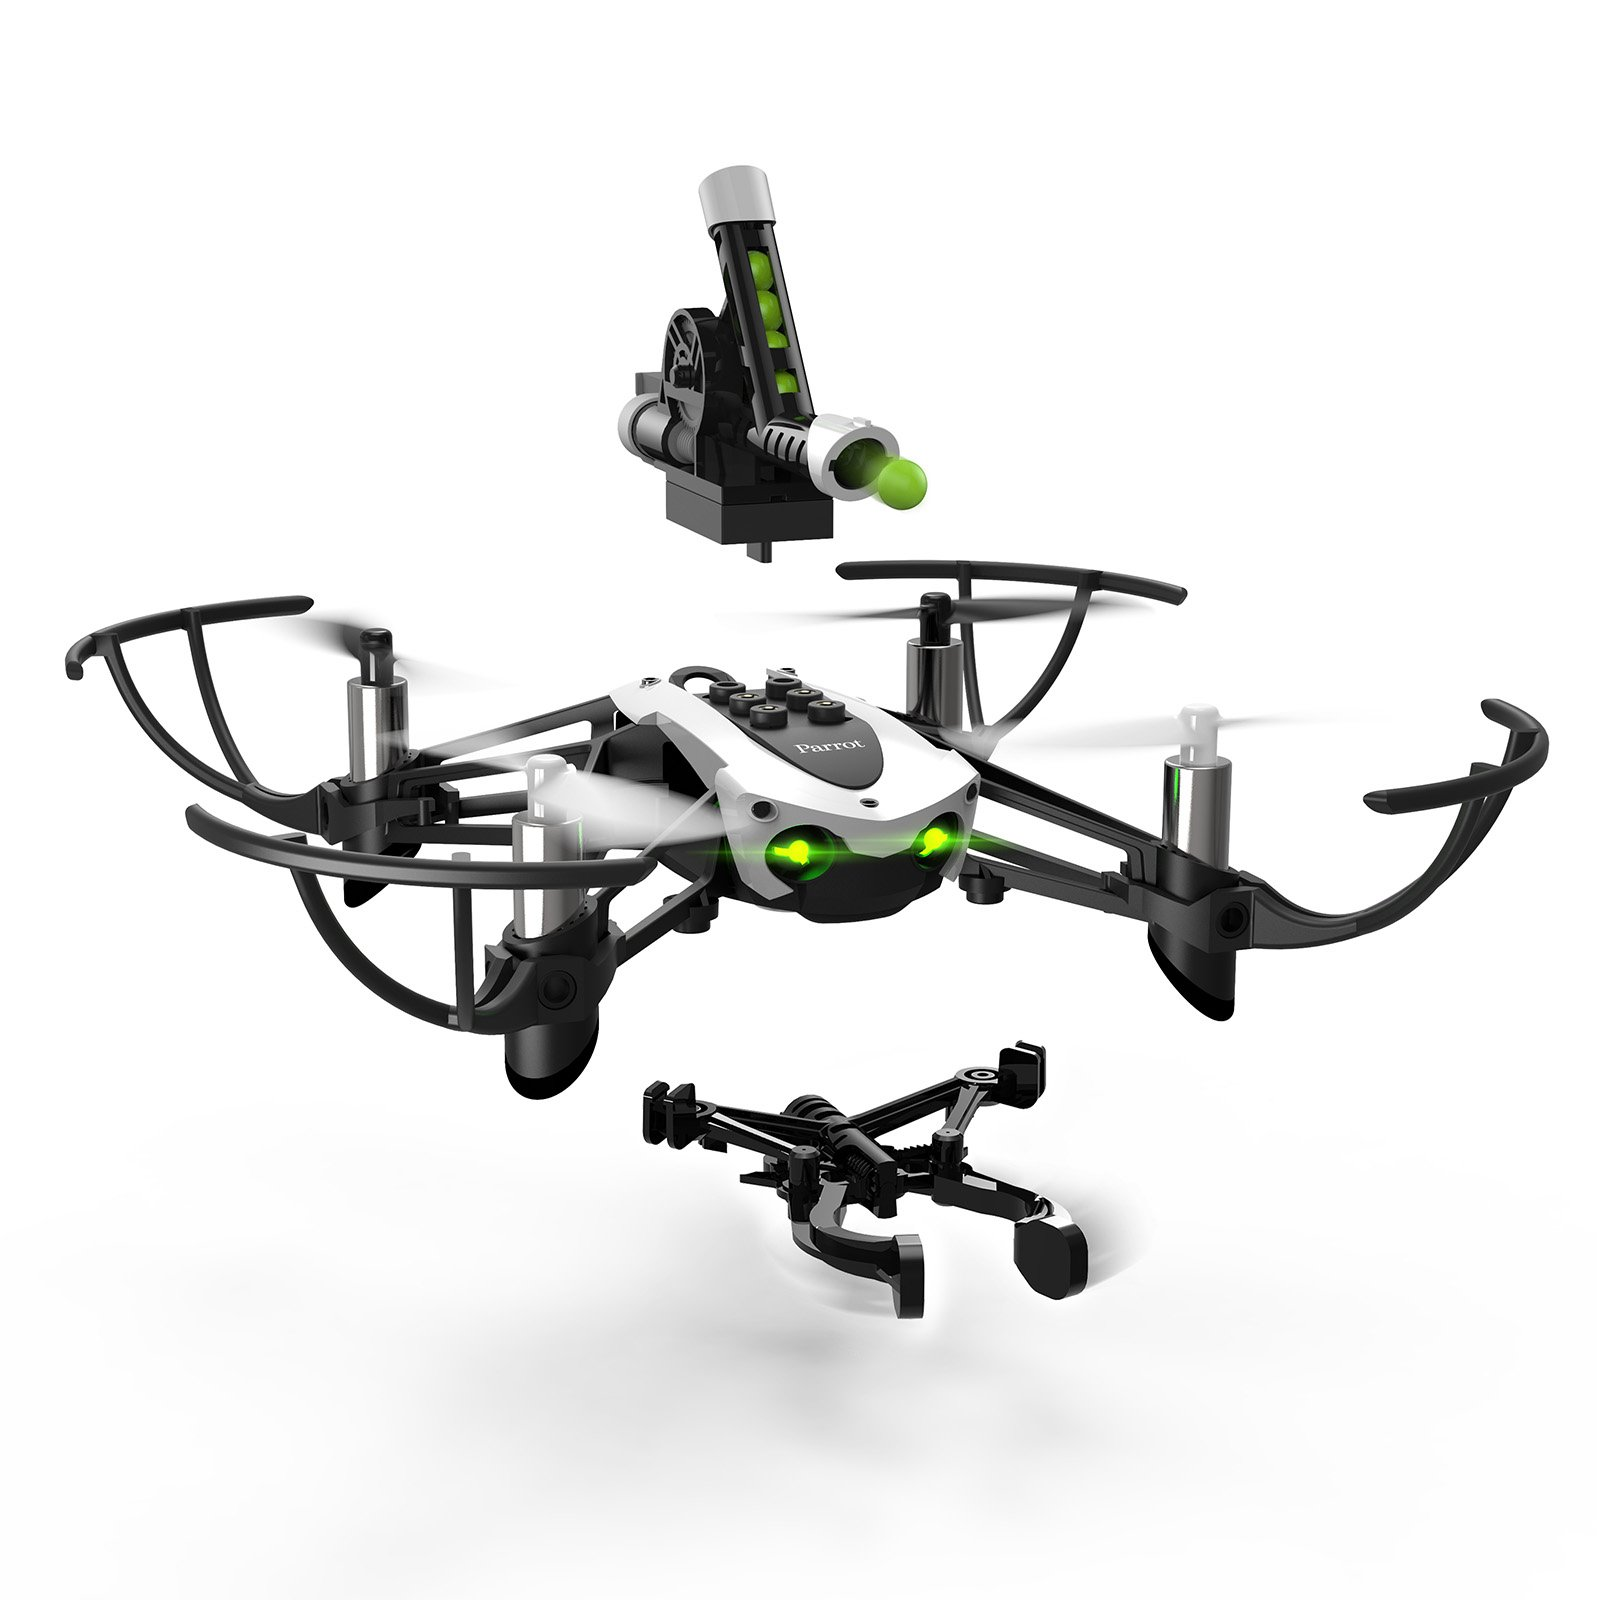 Parrot Minidrone Mambo with Cannon and Grabber Accessories (Certified Refurbished)